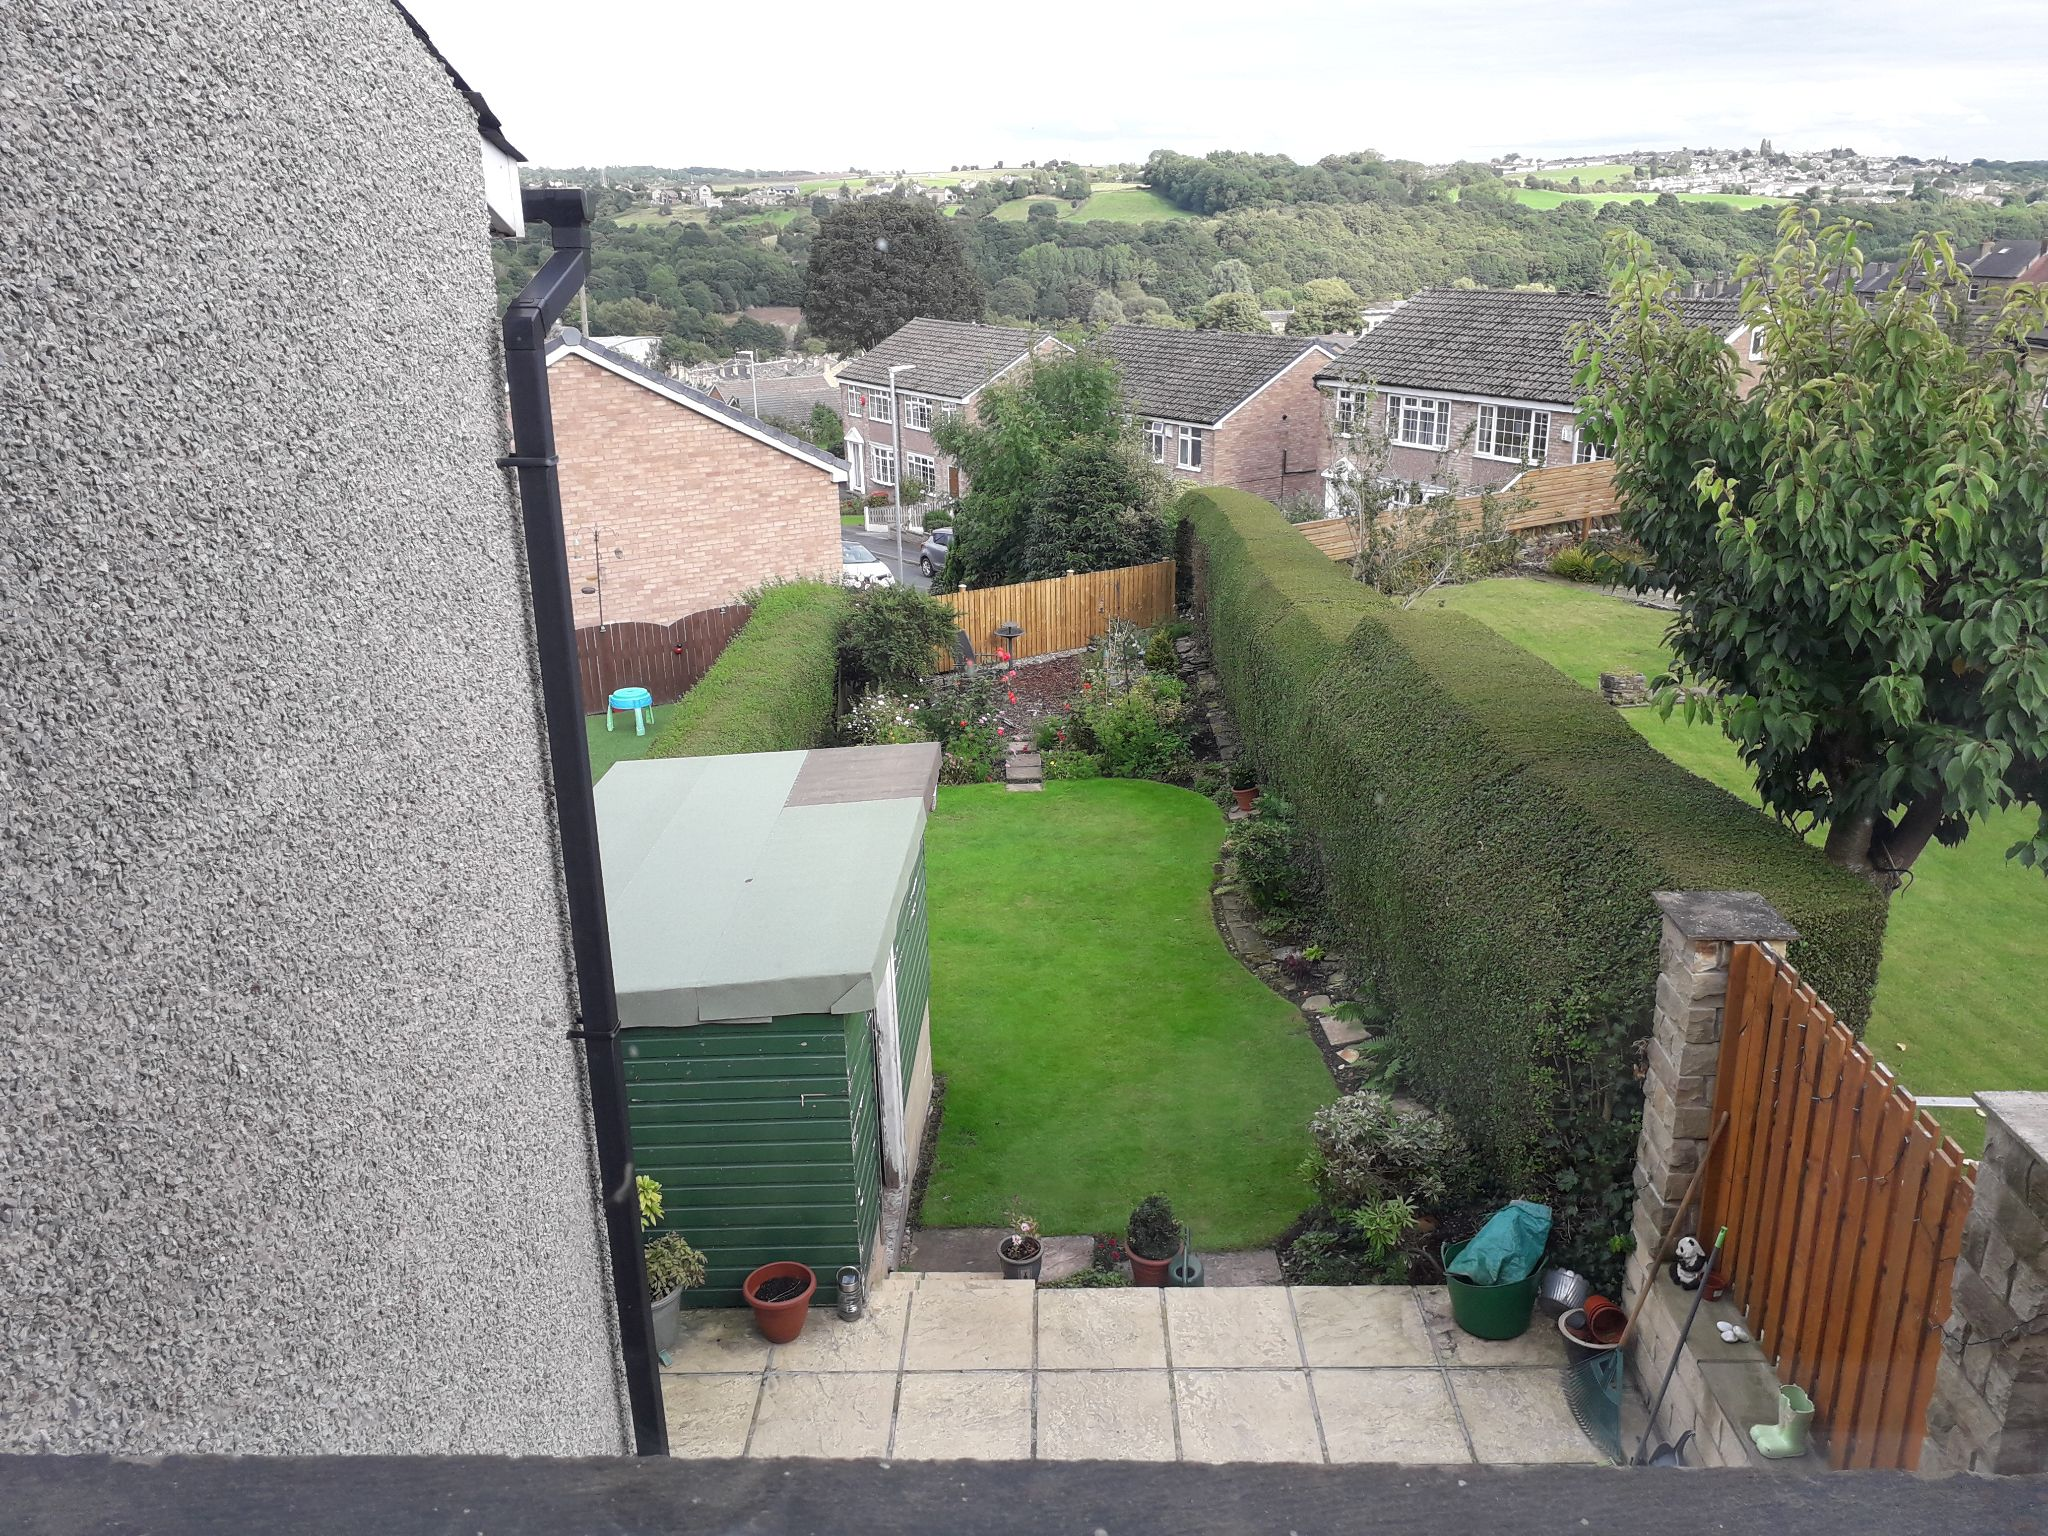 3 bedroom semi-detached house SSTC in Calderdale - Photograph 1.